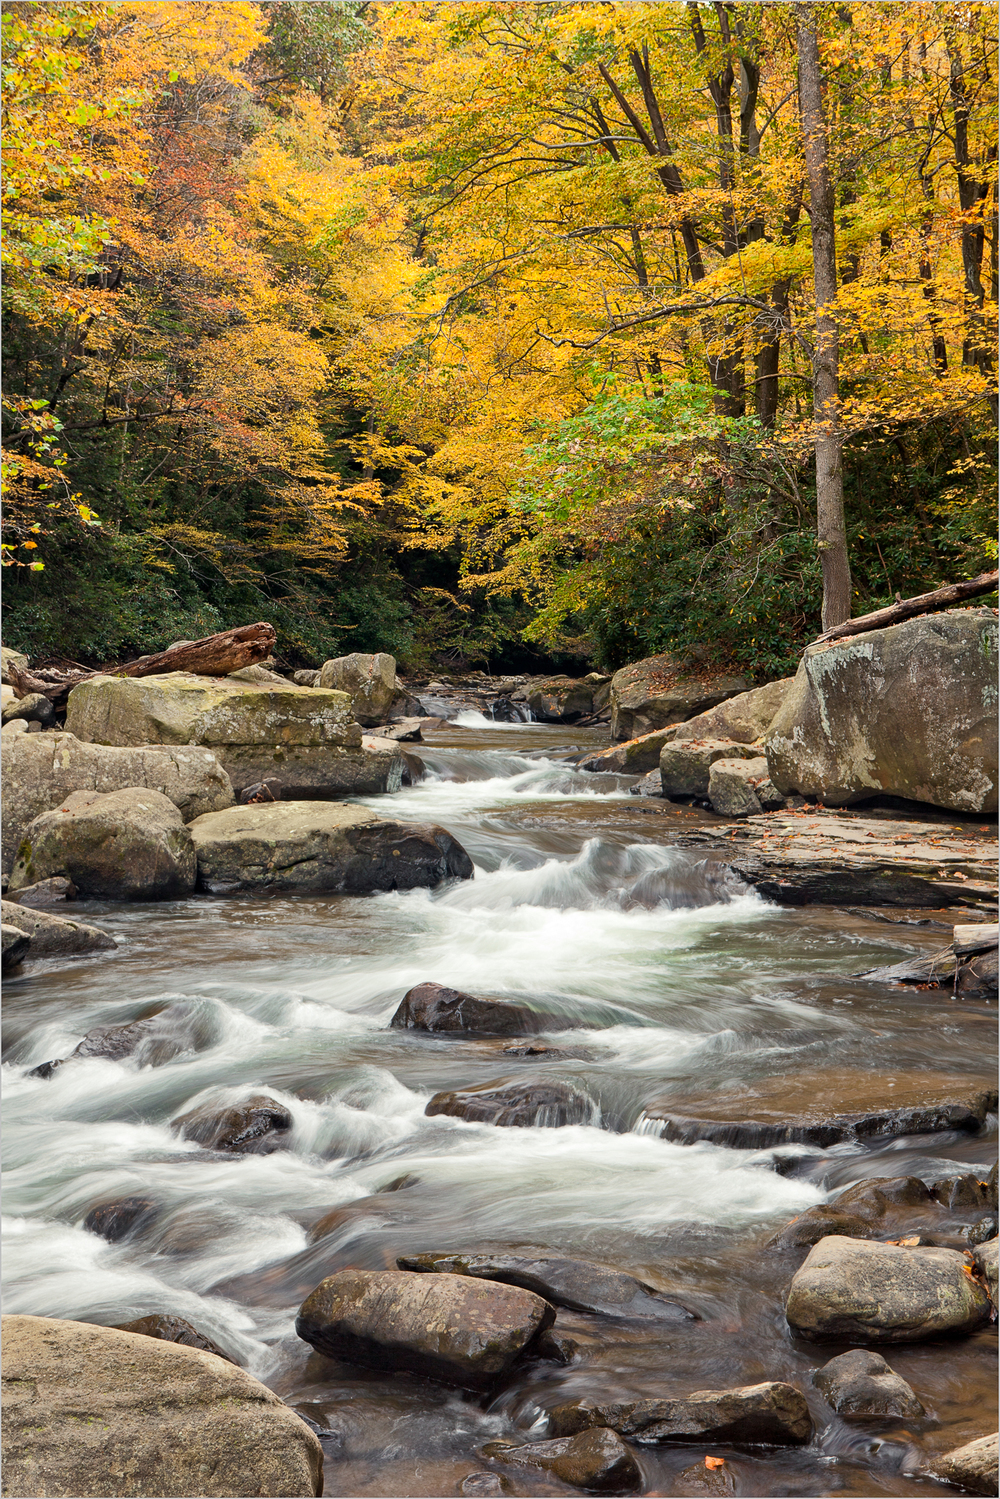 Autumn scene at the entrance to The Flumes, Ohiopyle State Park, PA